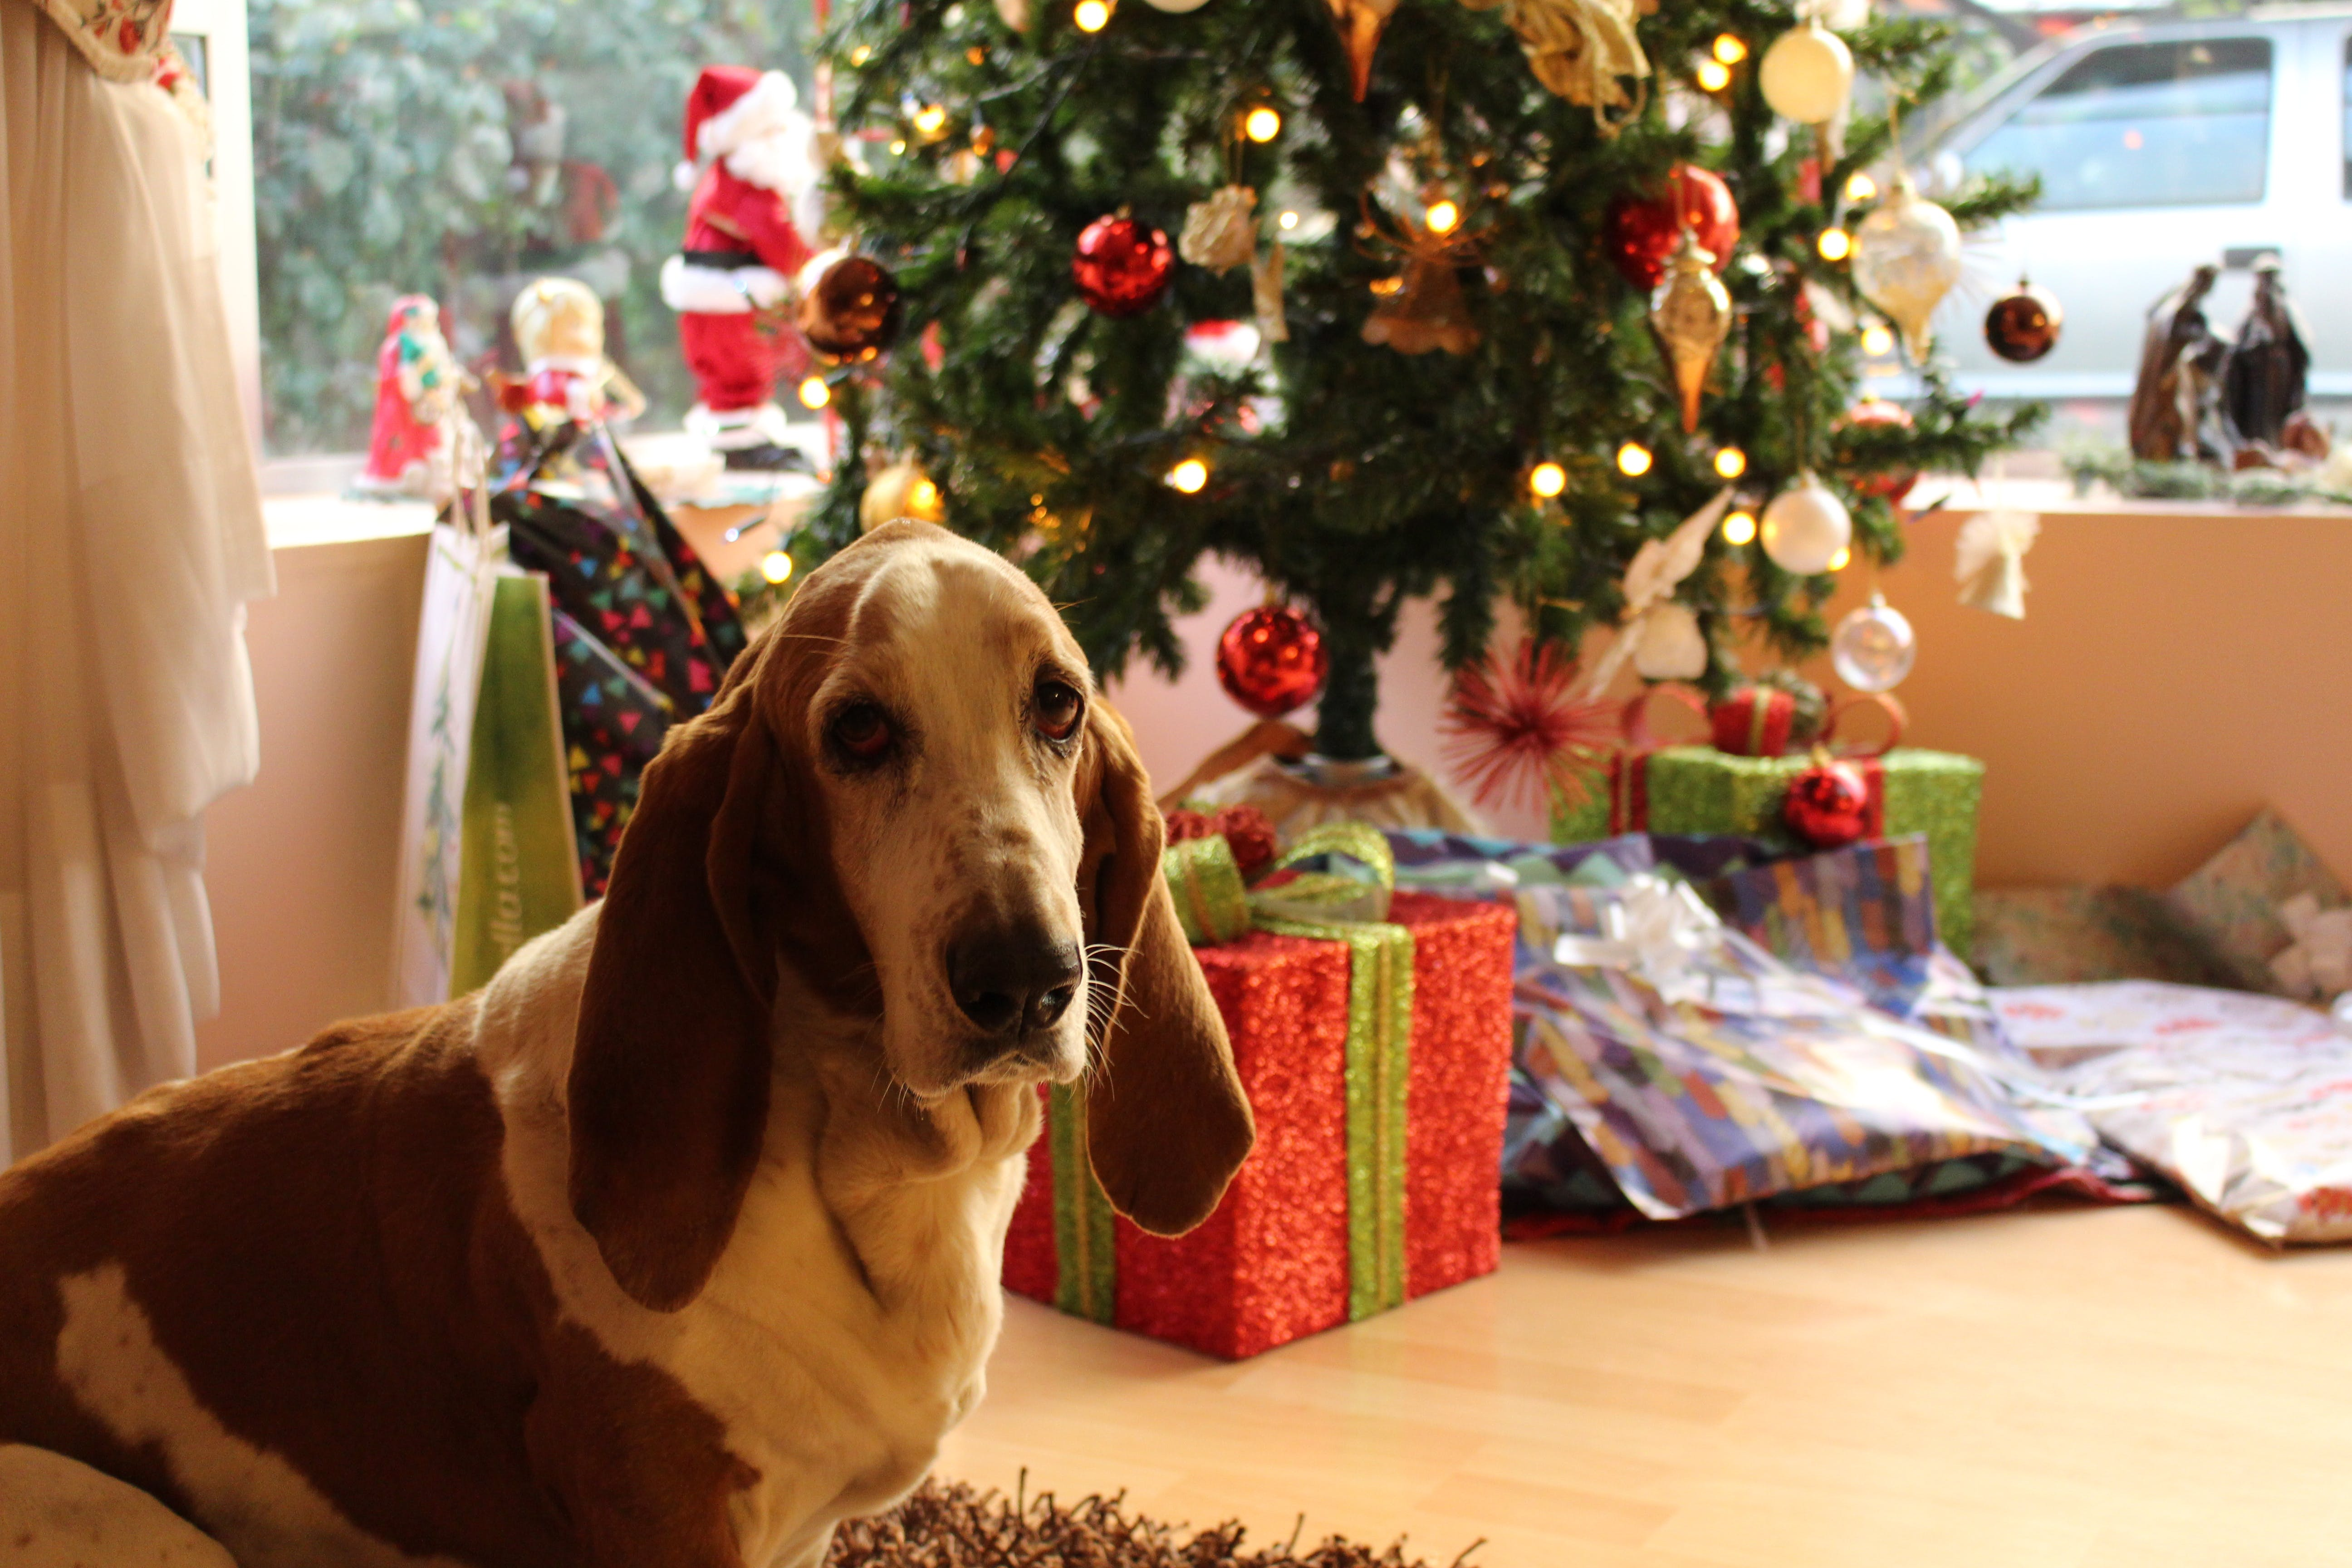 Tan and White Basset Hound Near the Christmas Tree